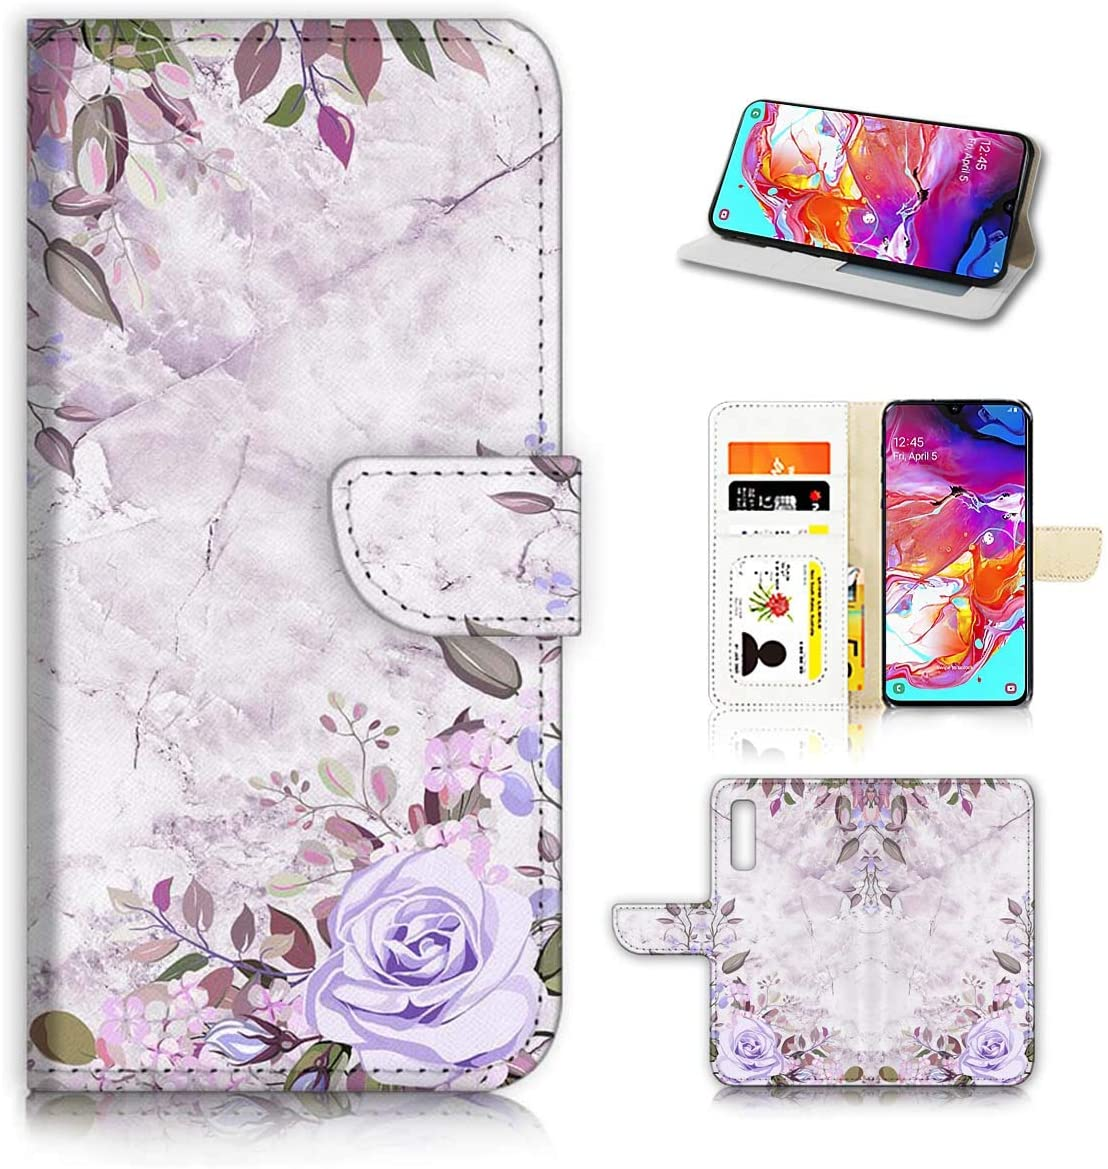 for Samsung A50, Galaxy A50, Designed Flip Wallet Phone Case Cover, A21809 Marble Blue Rose Flower 21809